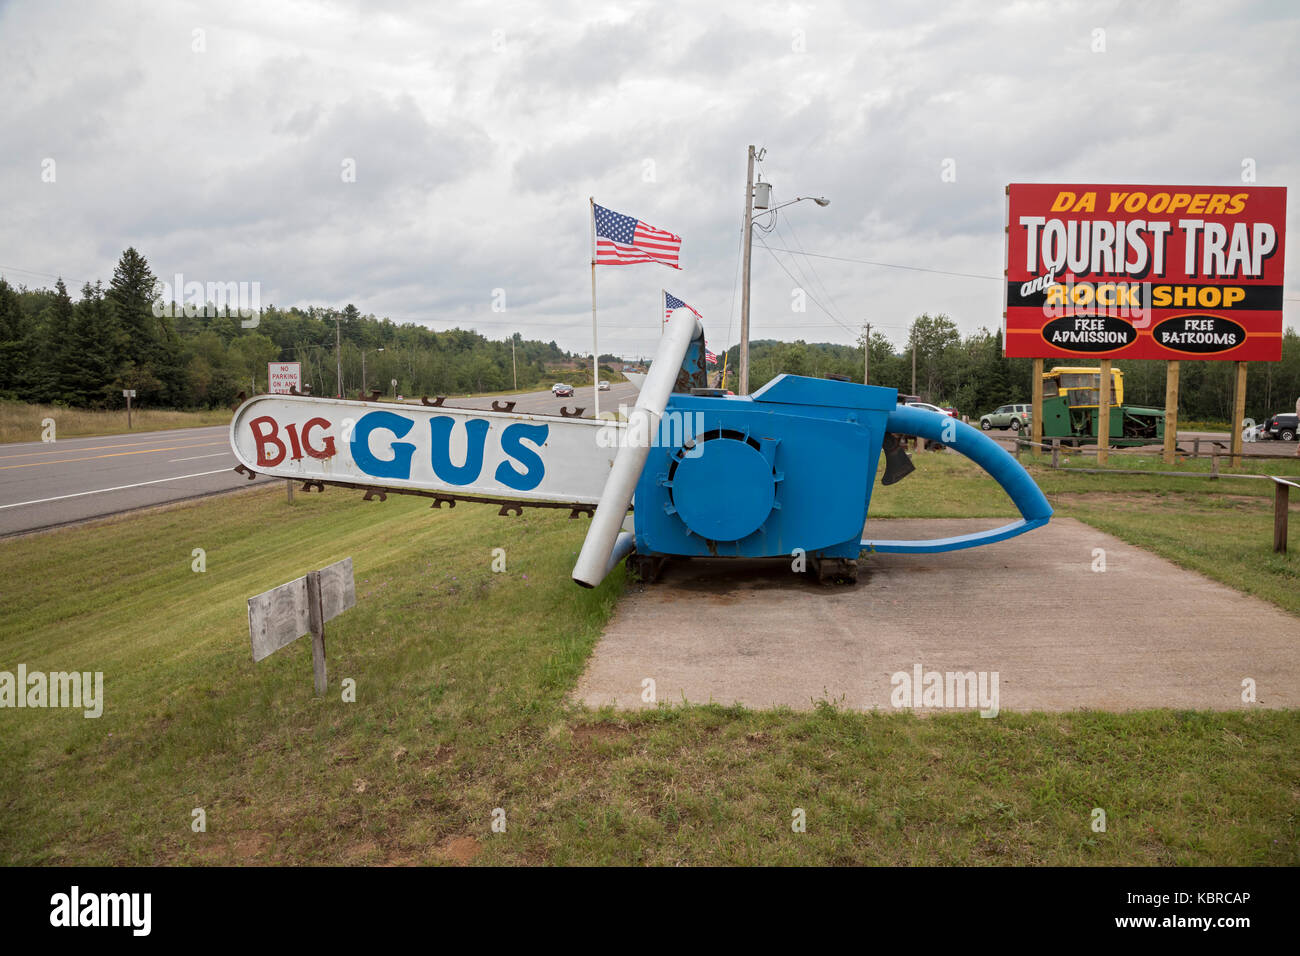 """Ishpeming, Michigan - """"Big Gus,"""" said to be the world's largest chainsaw, at Da Yoopers Tourist Trap. The attraction Stock Photo"""